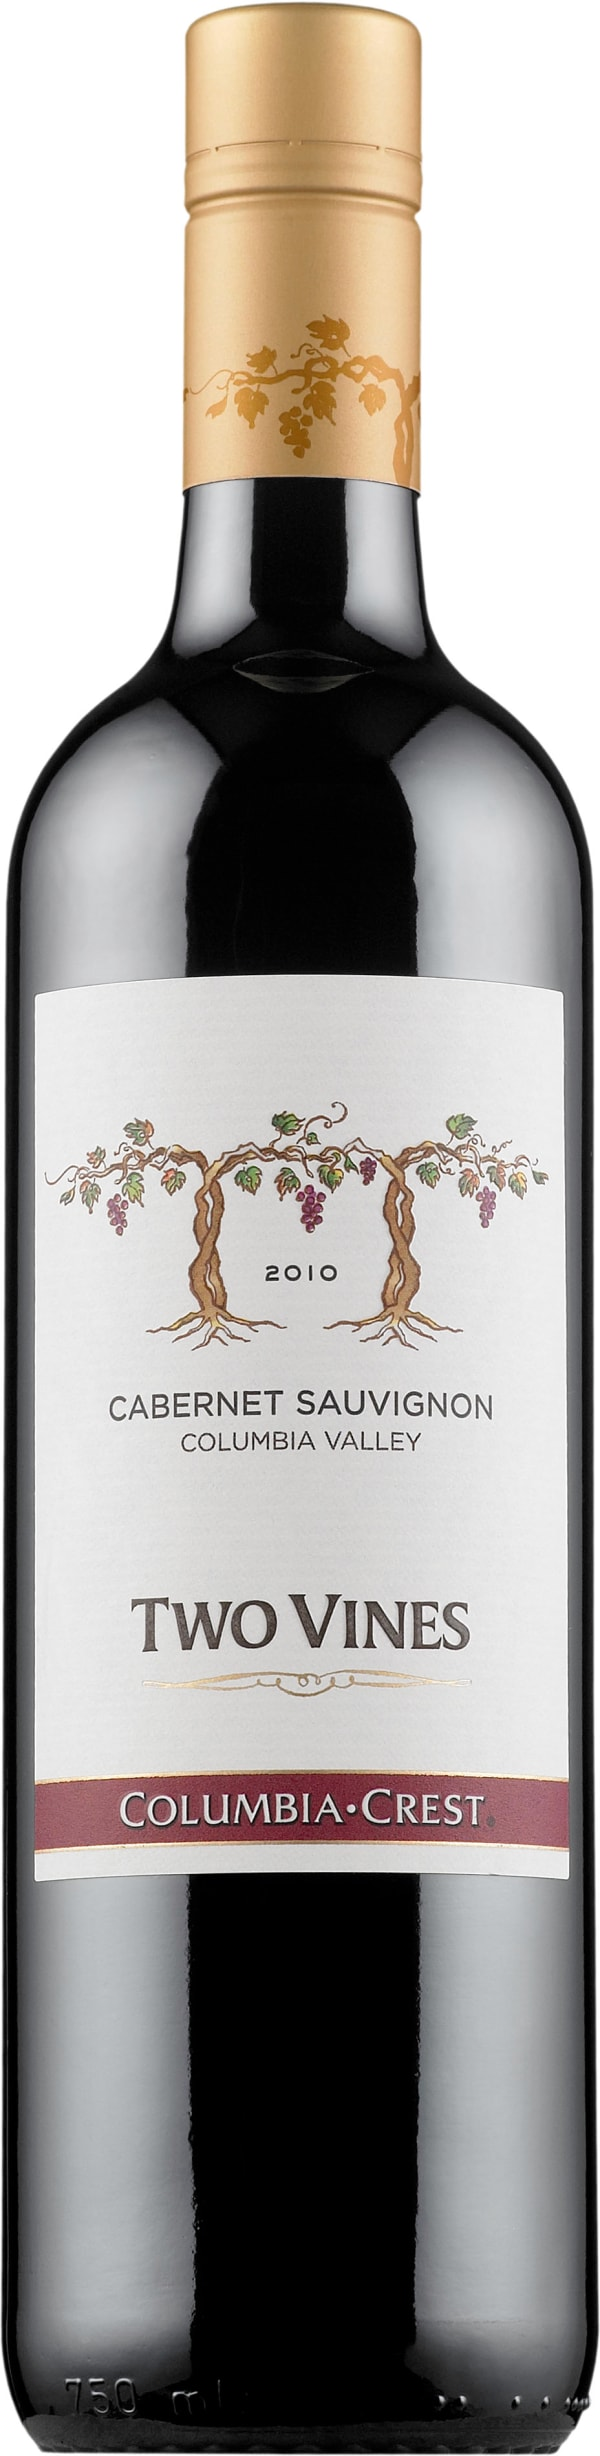 Columbia Crest Two Vines Cabernet Sauvignon 2013